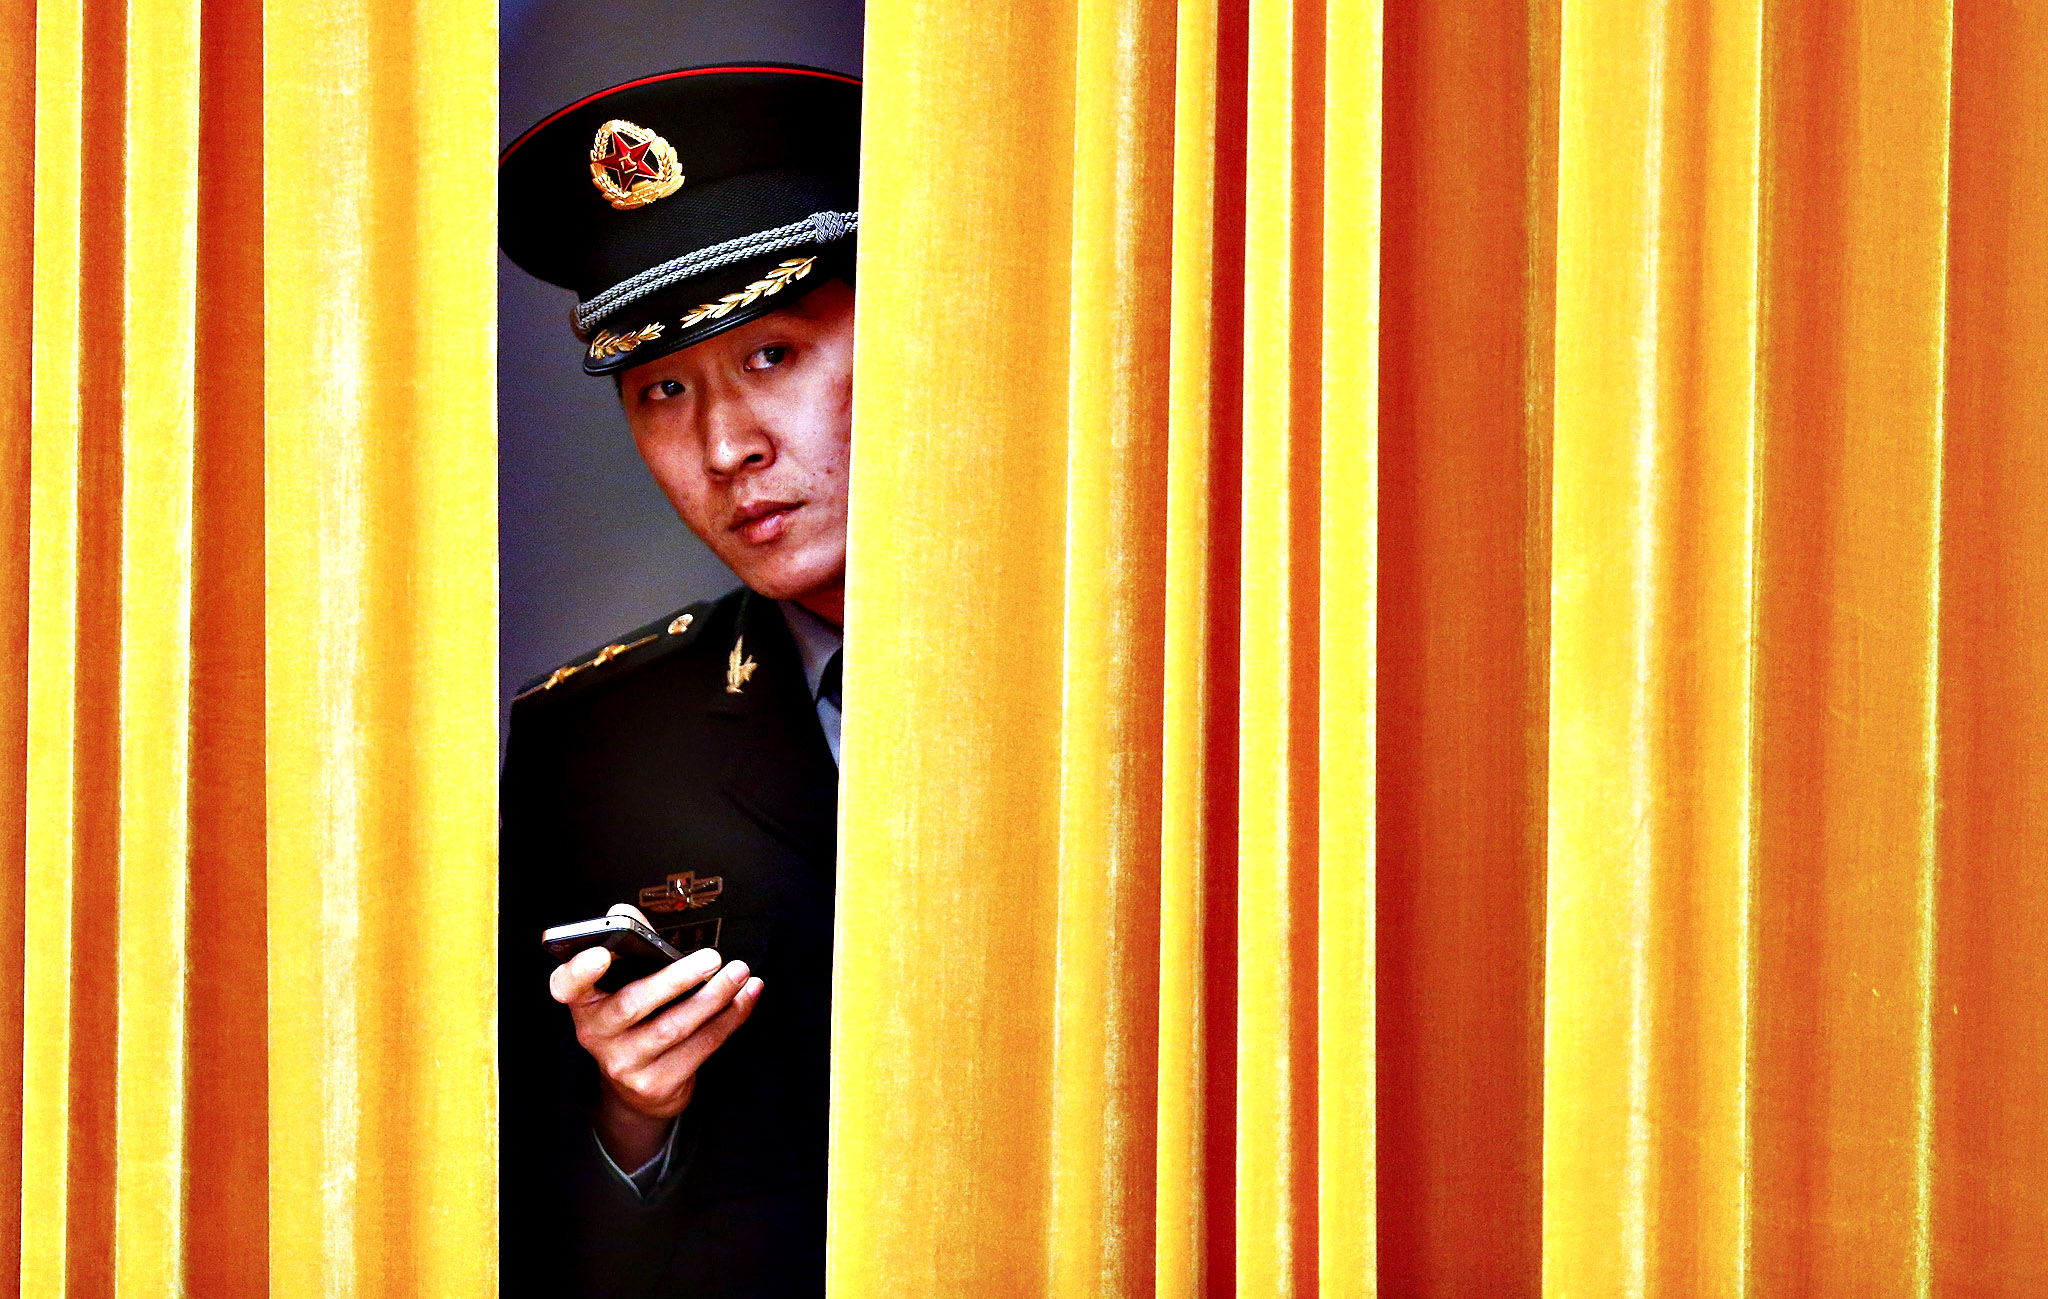 A member of the People's Liberation Army (PLA) is seen behind a curtain before a welcoming ceremony for Dutch Prime Minister Mark Rutte with his Chinese counterpart Li Keqiang (both not pictured) at the Great Hall of the People in Beijing, China